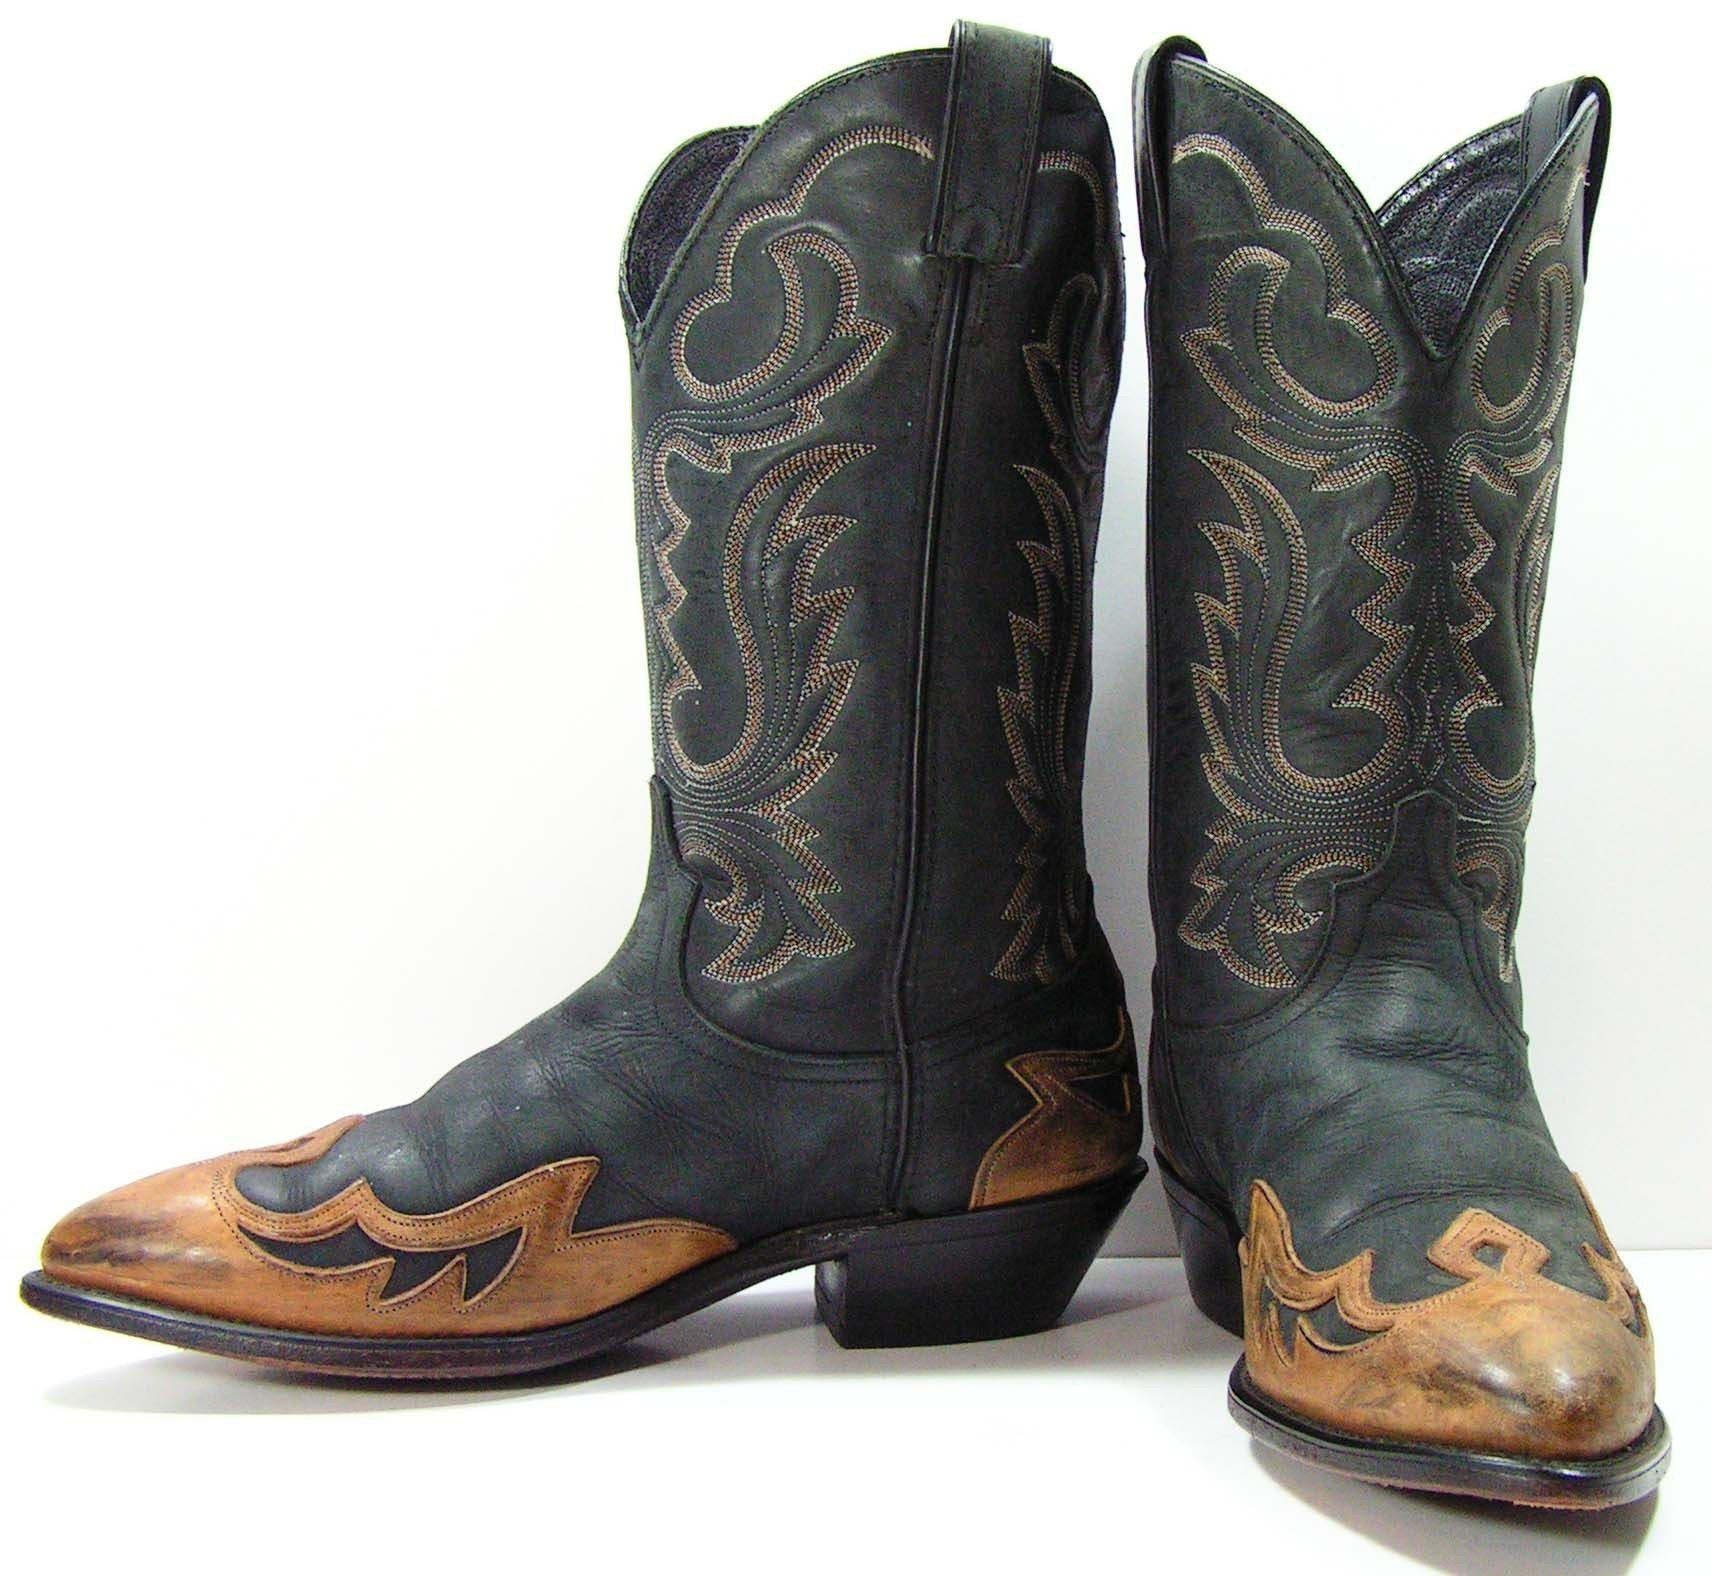 Summer 2018 fashion trends: cowboy boots 7